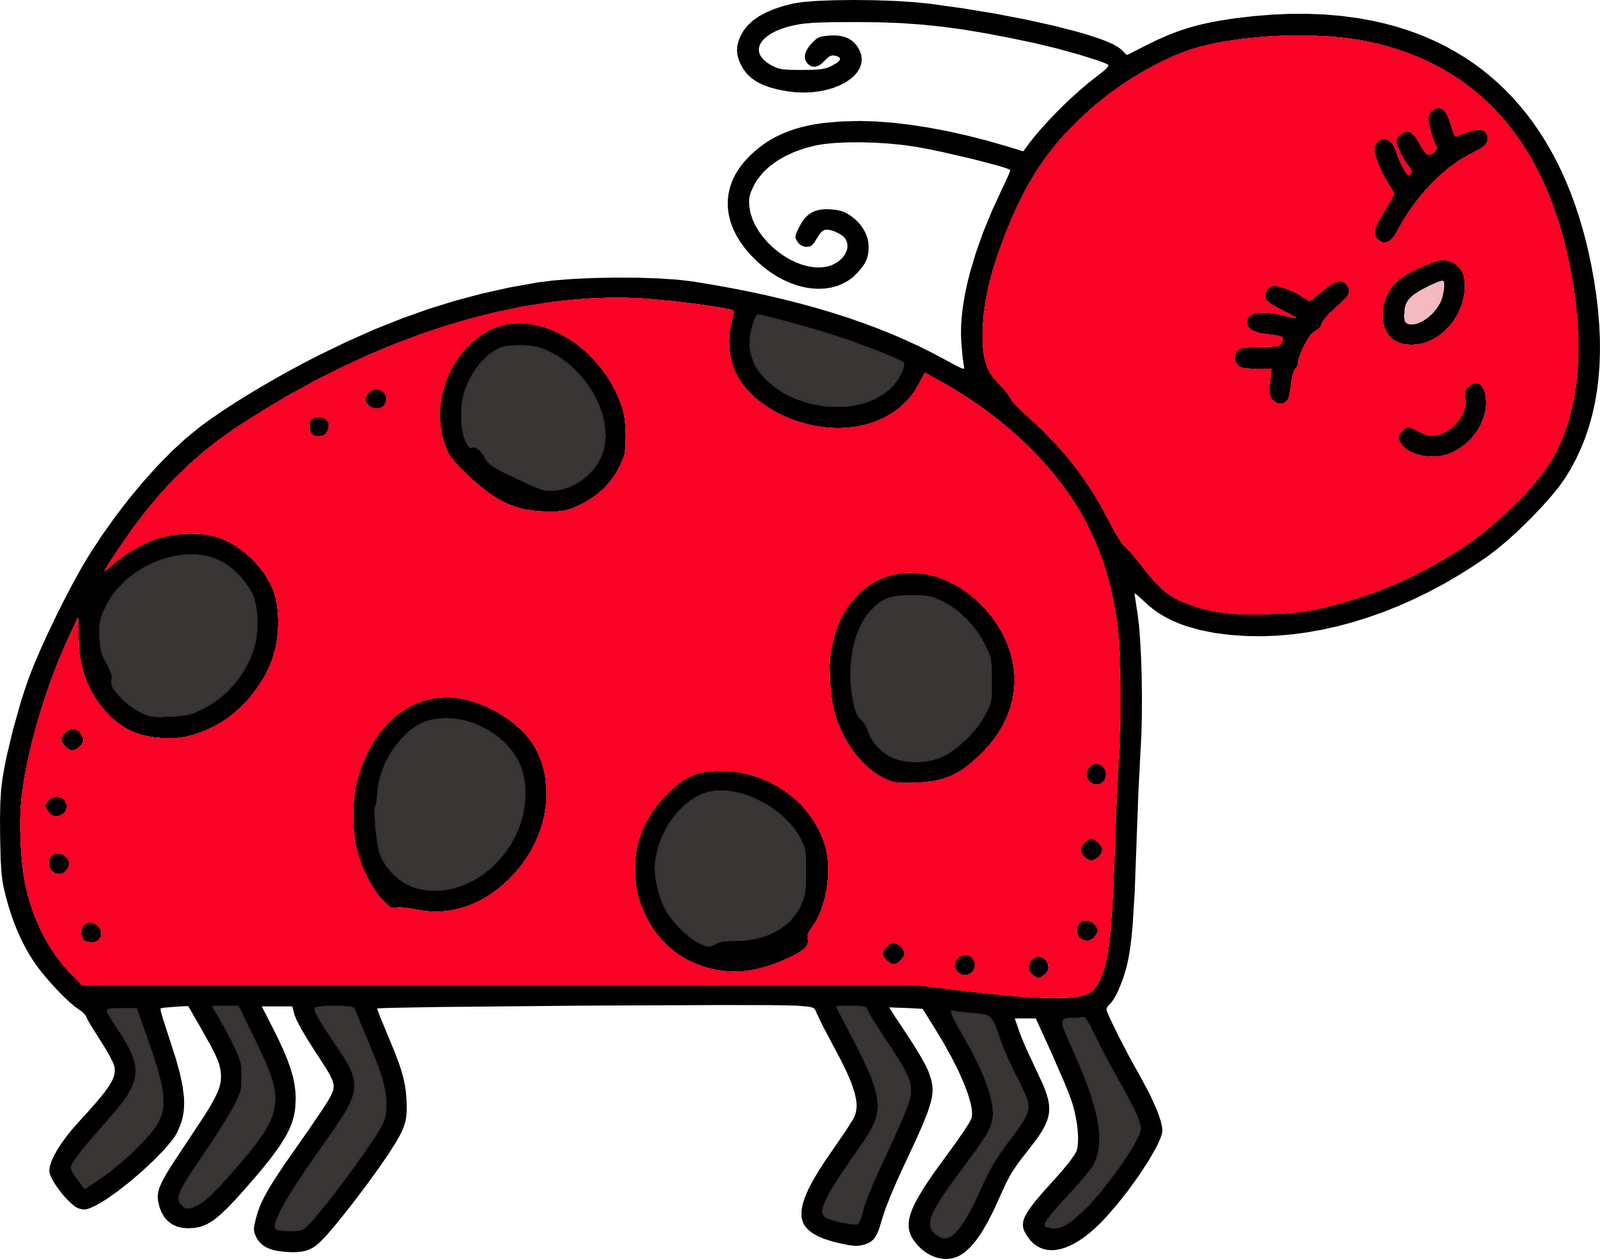 Angry clipart bug. Cute insect clip art